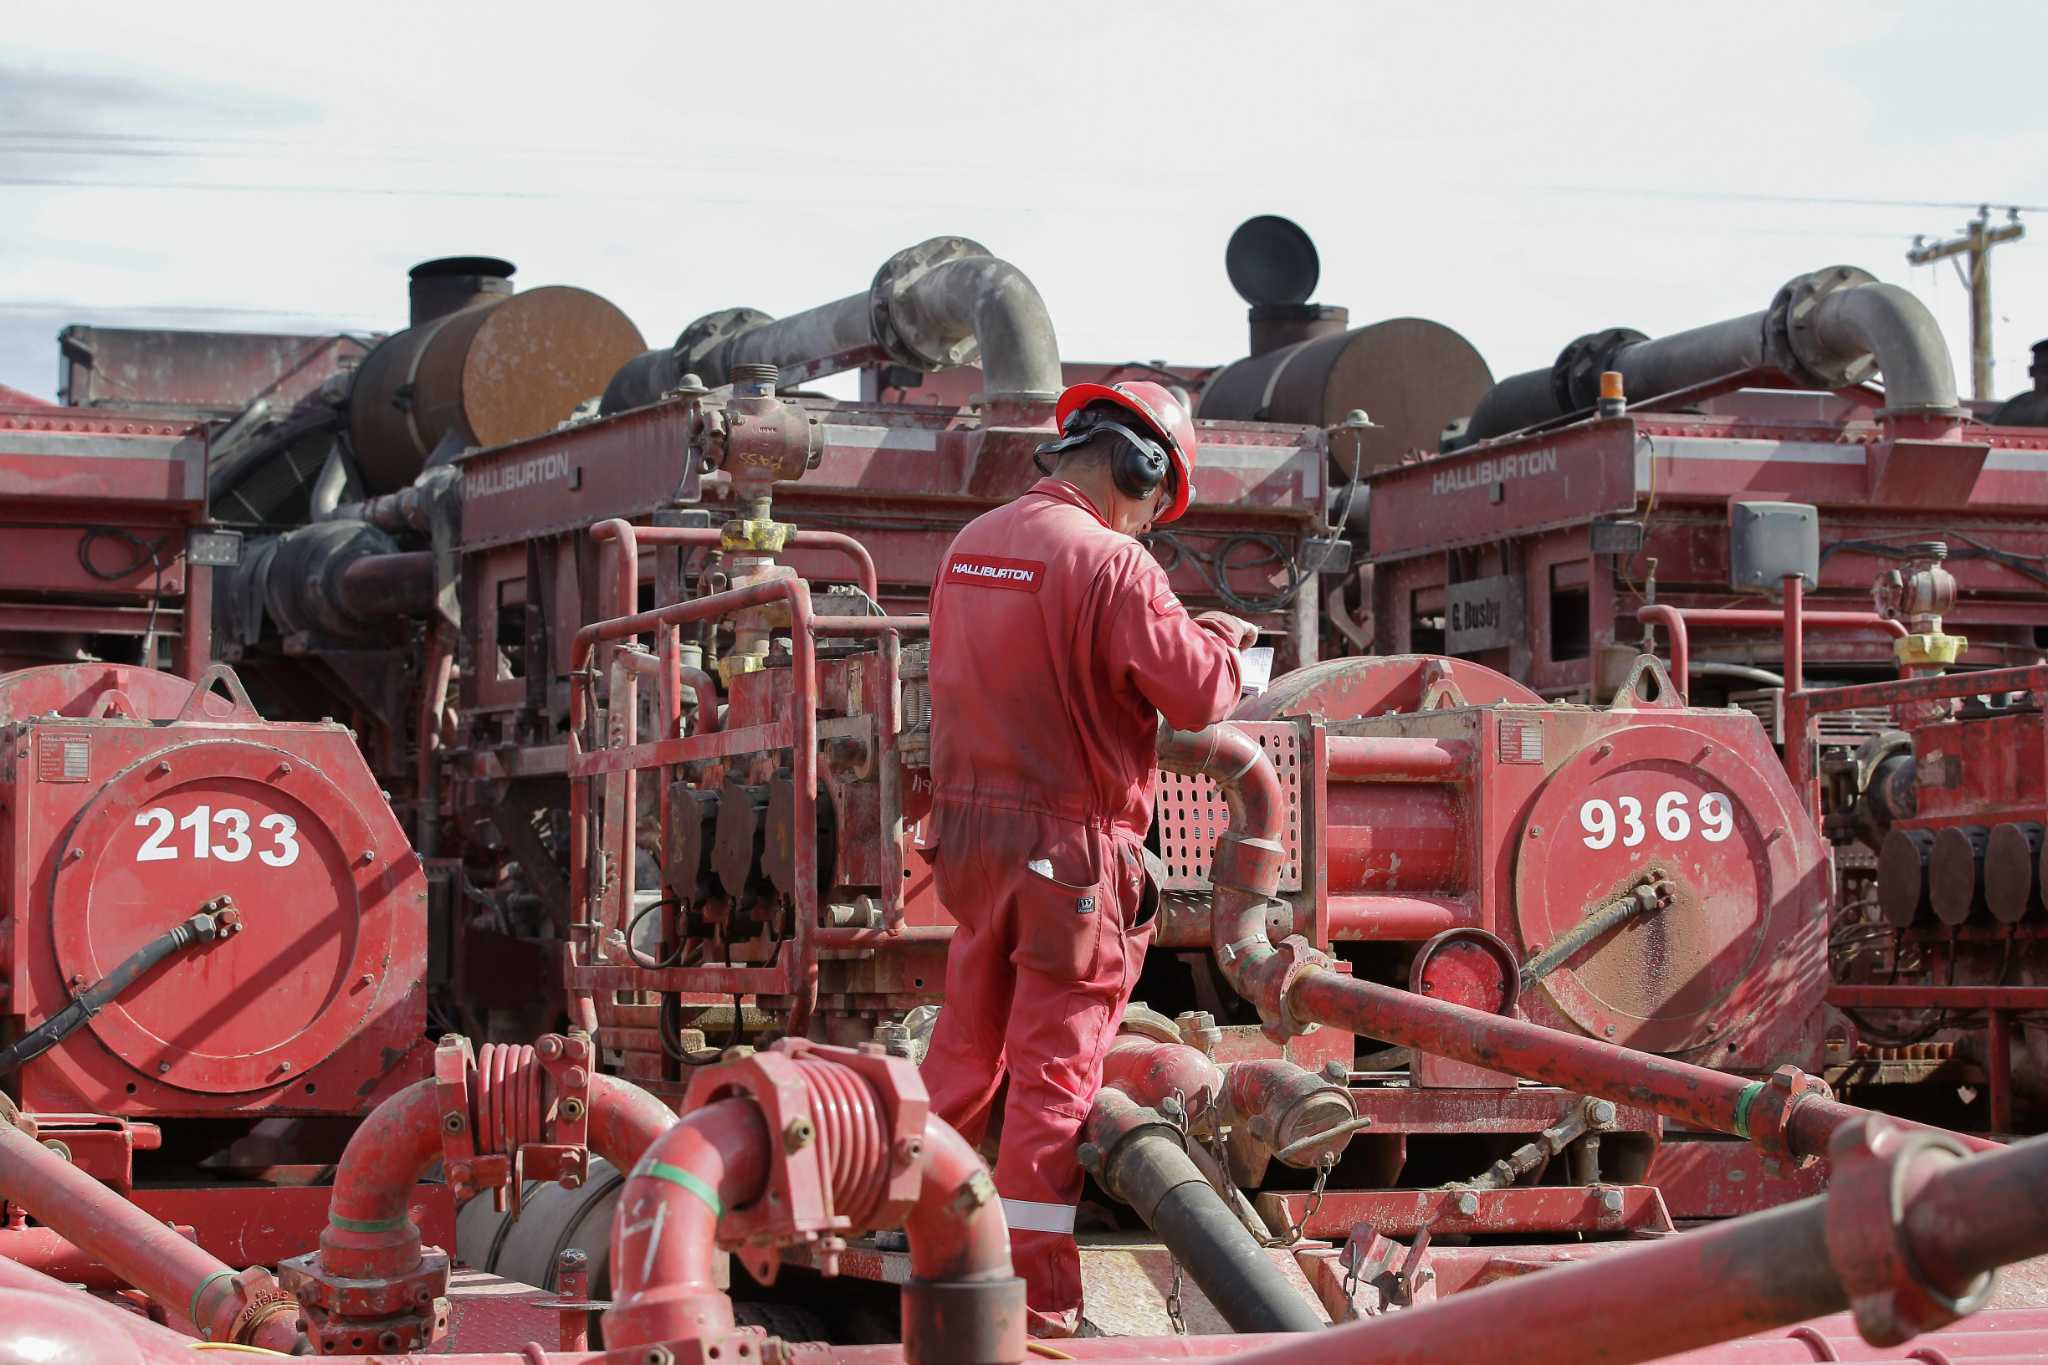 Halliburton to pay down debt by issuing $1 billion of lower-interest debt